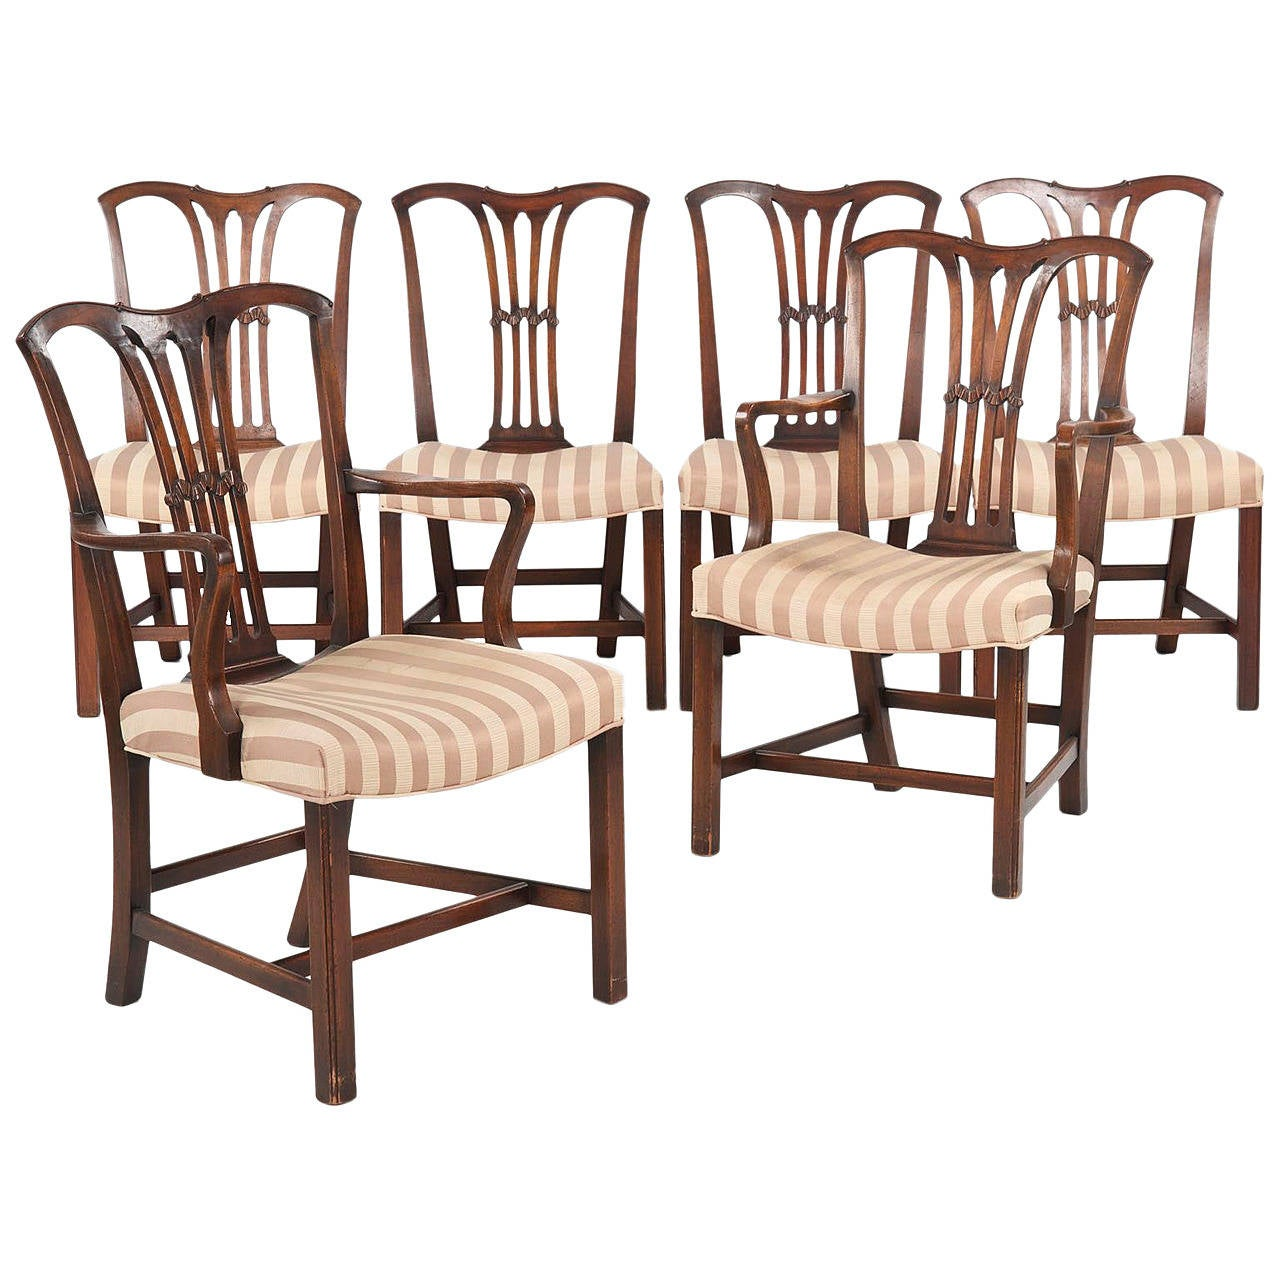 Set of Six Chippendale Style Antique Dining Chairs, 19th ...